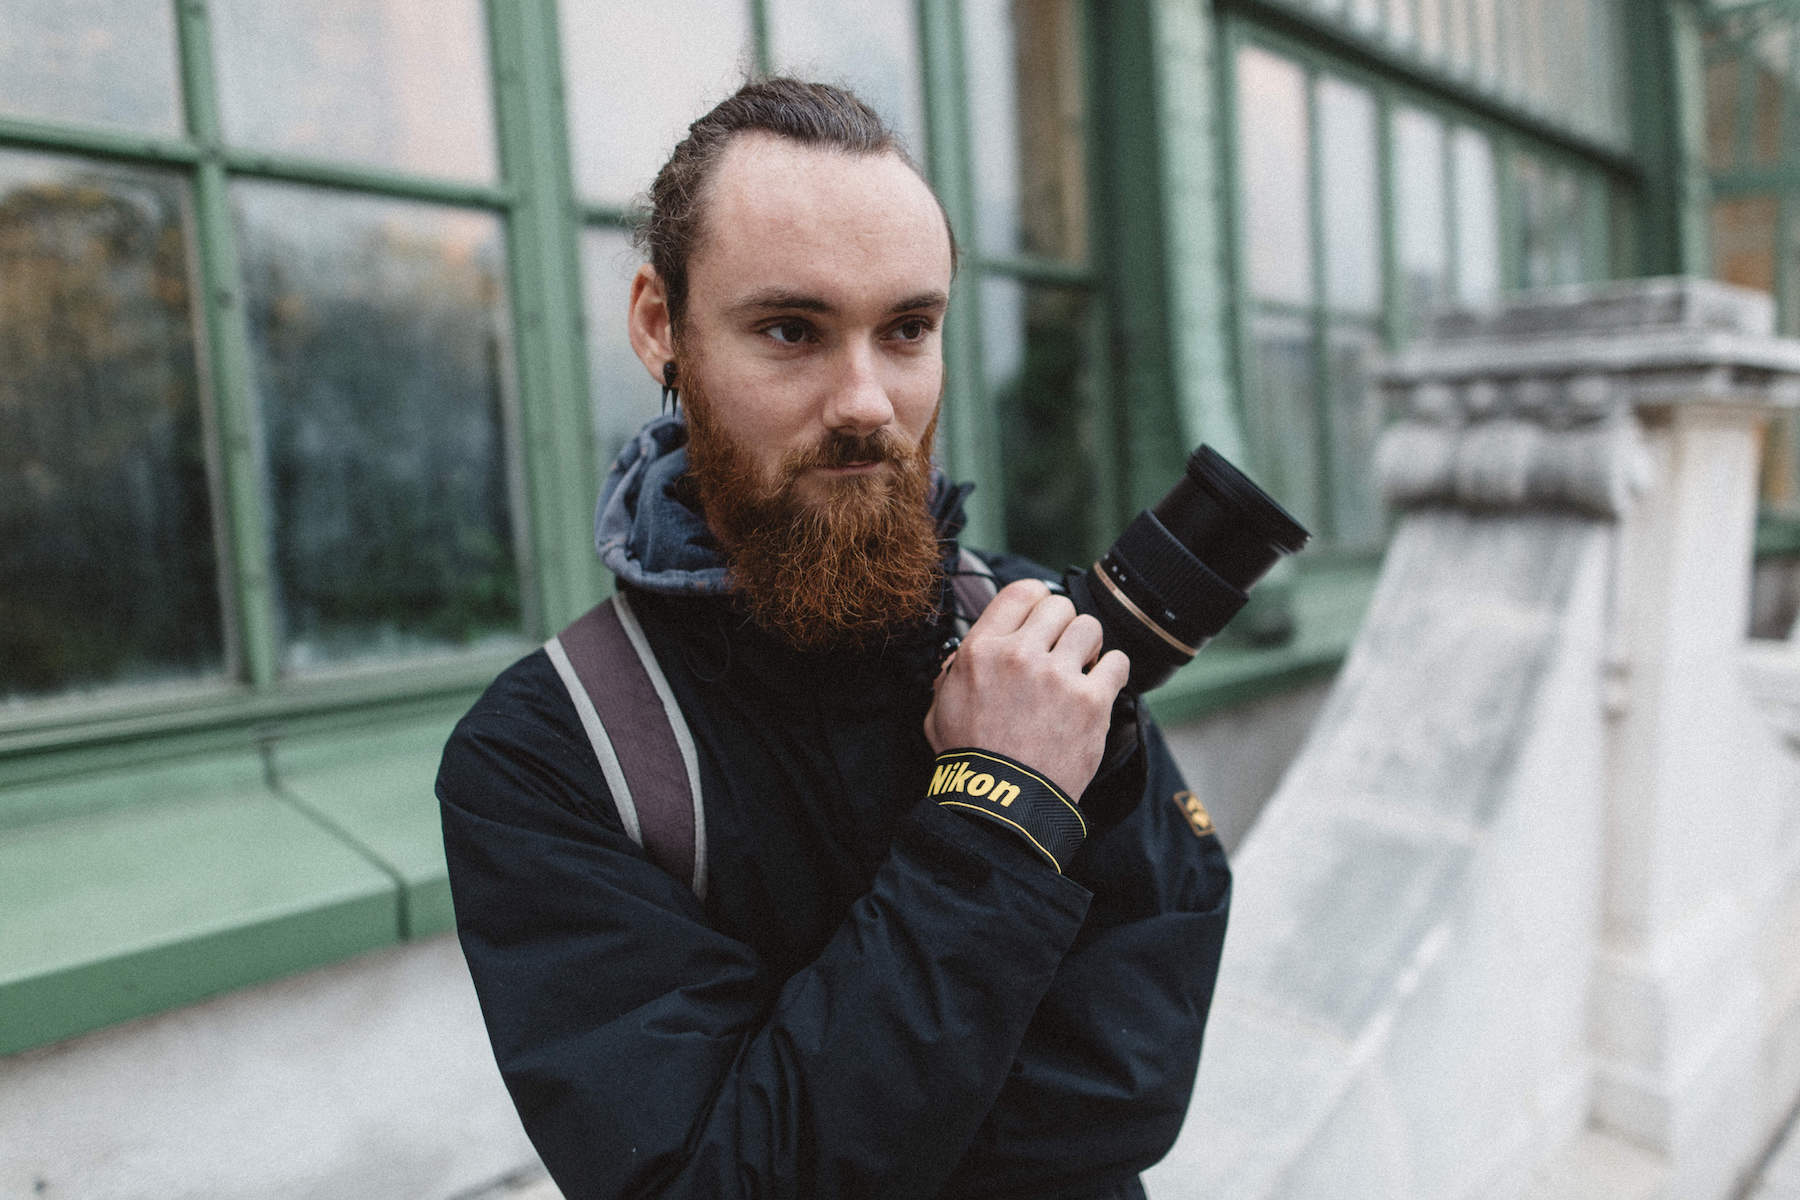 Stylish Beards on the Streets of Vienna with Braun_Wear a beard as an accessory_Meanwhile in Awesometown_Austrian Mens Fashion and Lifestyle Blogger7